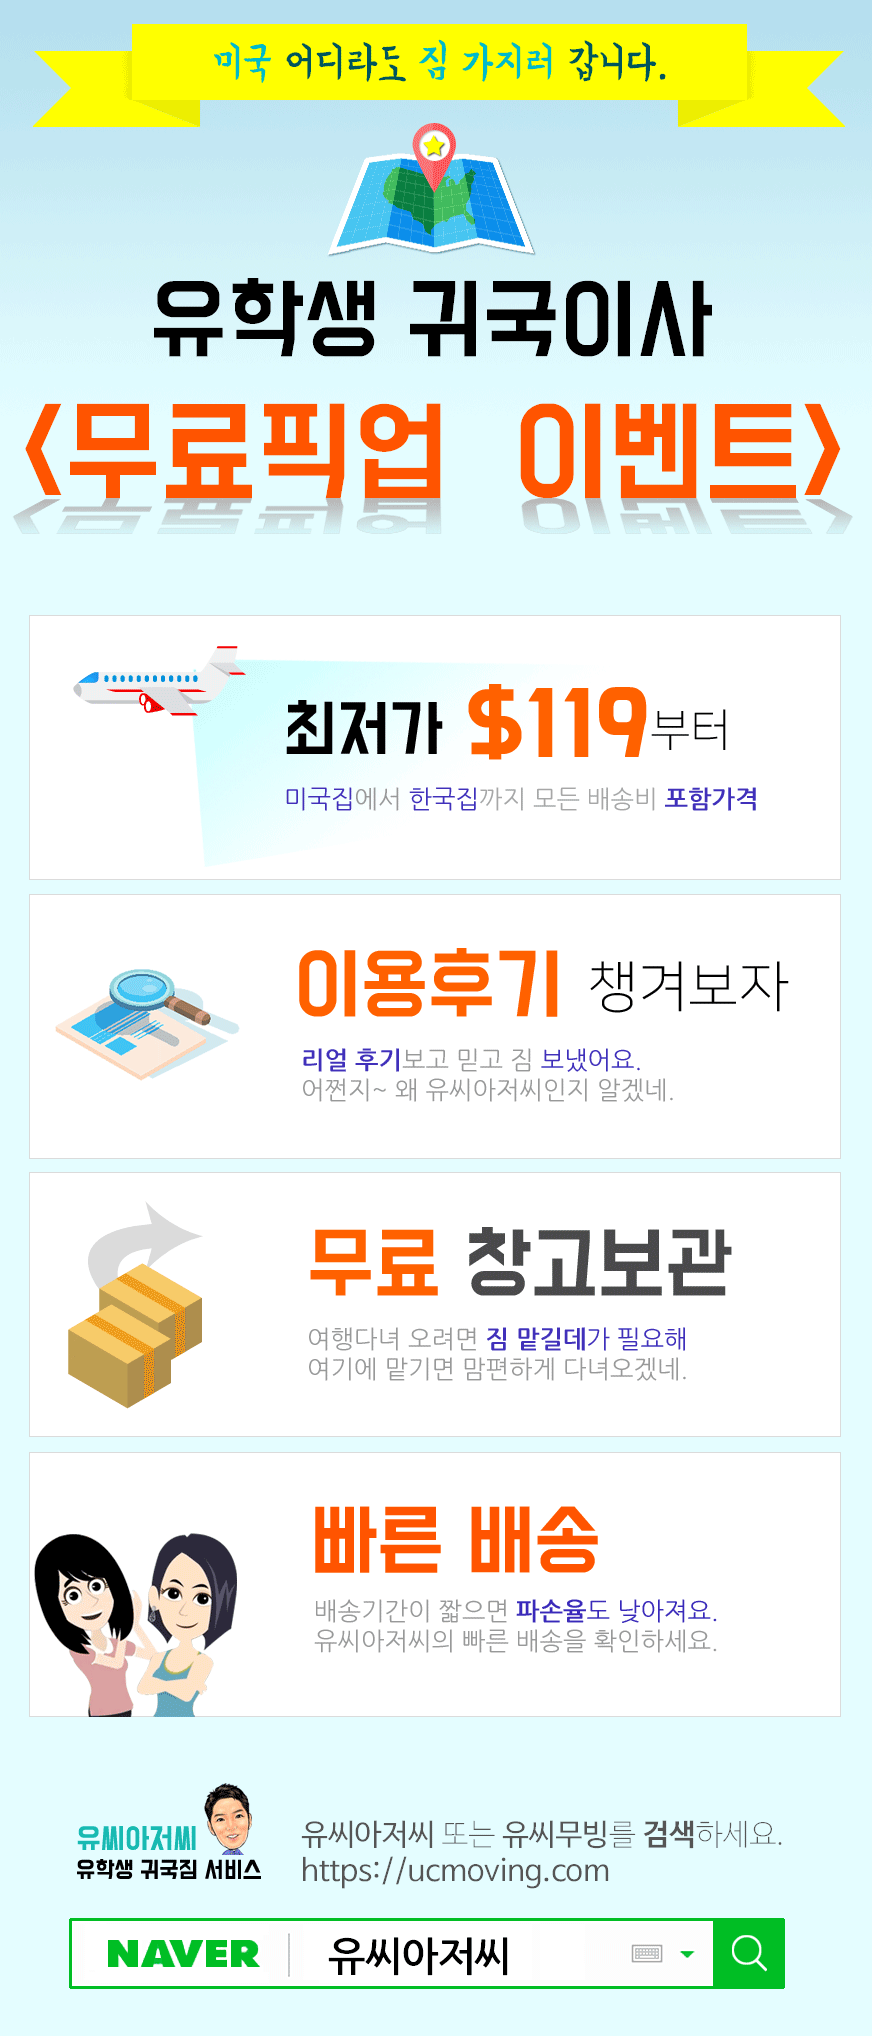 http://www.hankookin.us/./files/attach/images/2845/084/684/48a30d9024aebdc8ca5c39aece32be31.png